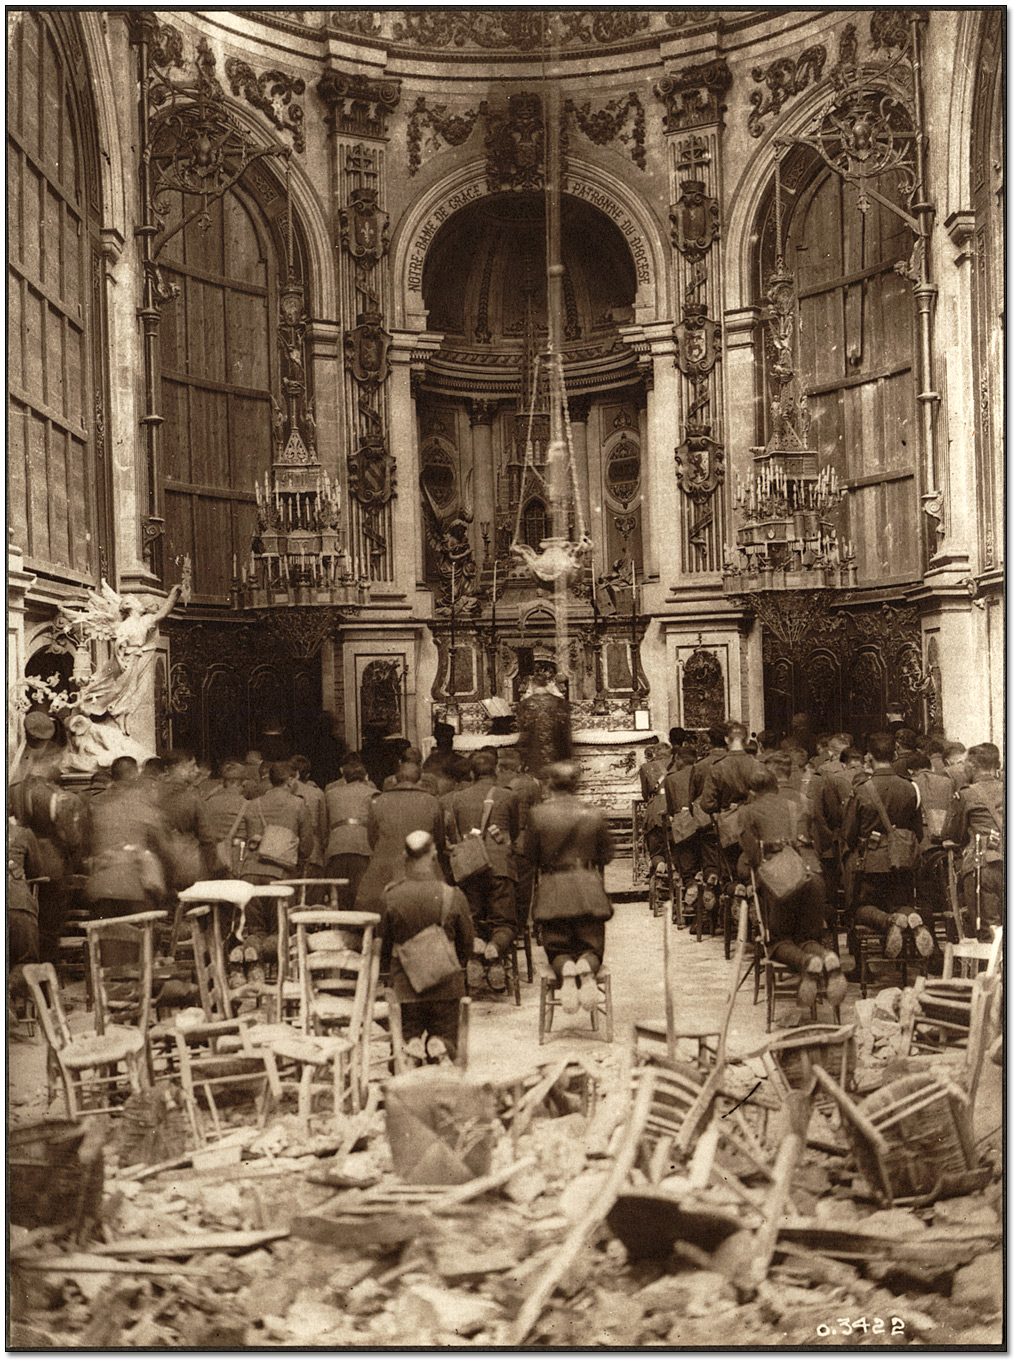 A Thanksgiving Service, attended by Canadian troops, being held in the Cambrai Cathedral, October 13, 1918